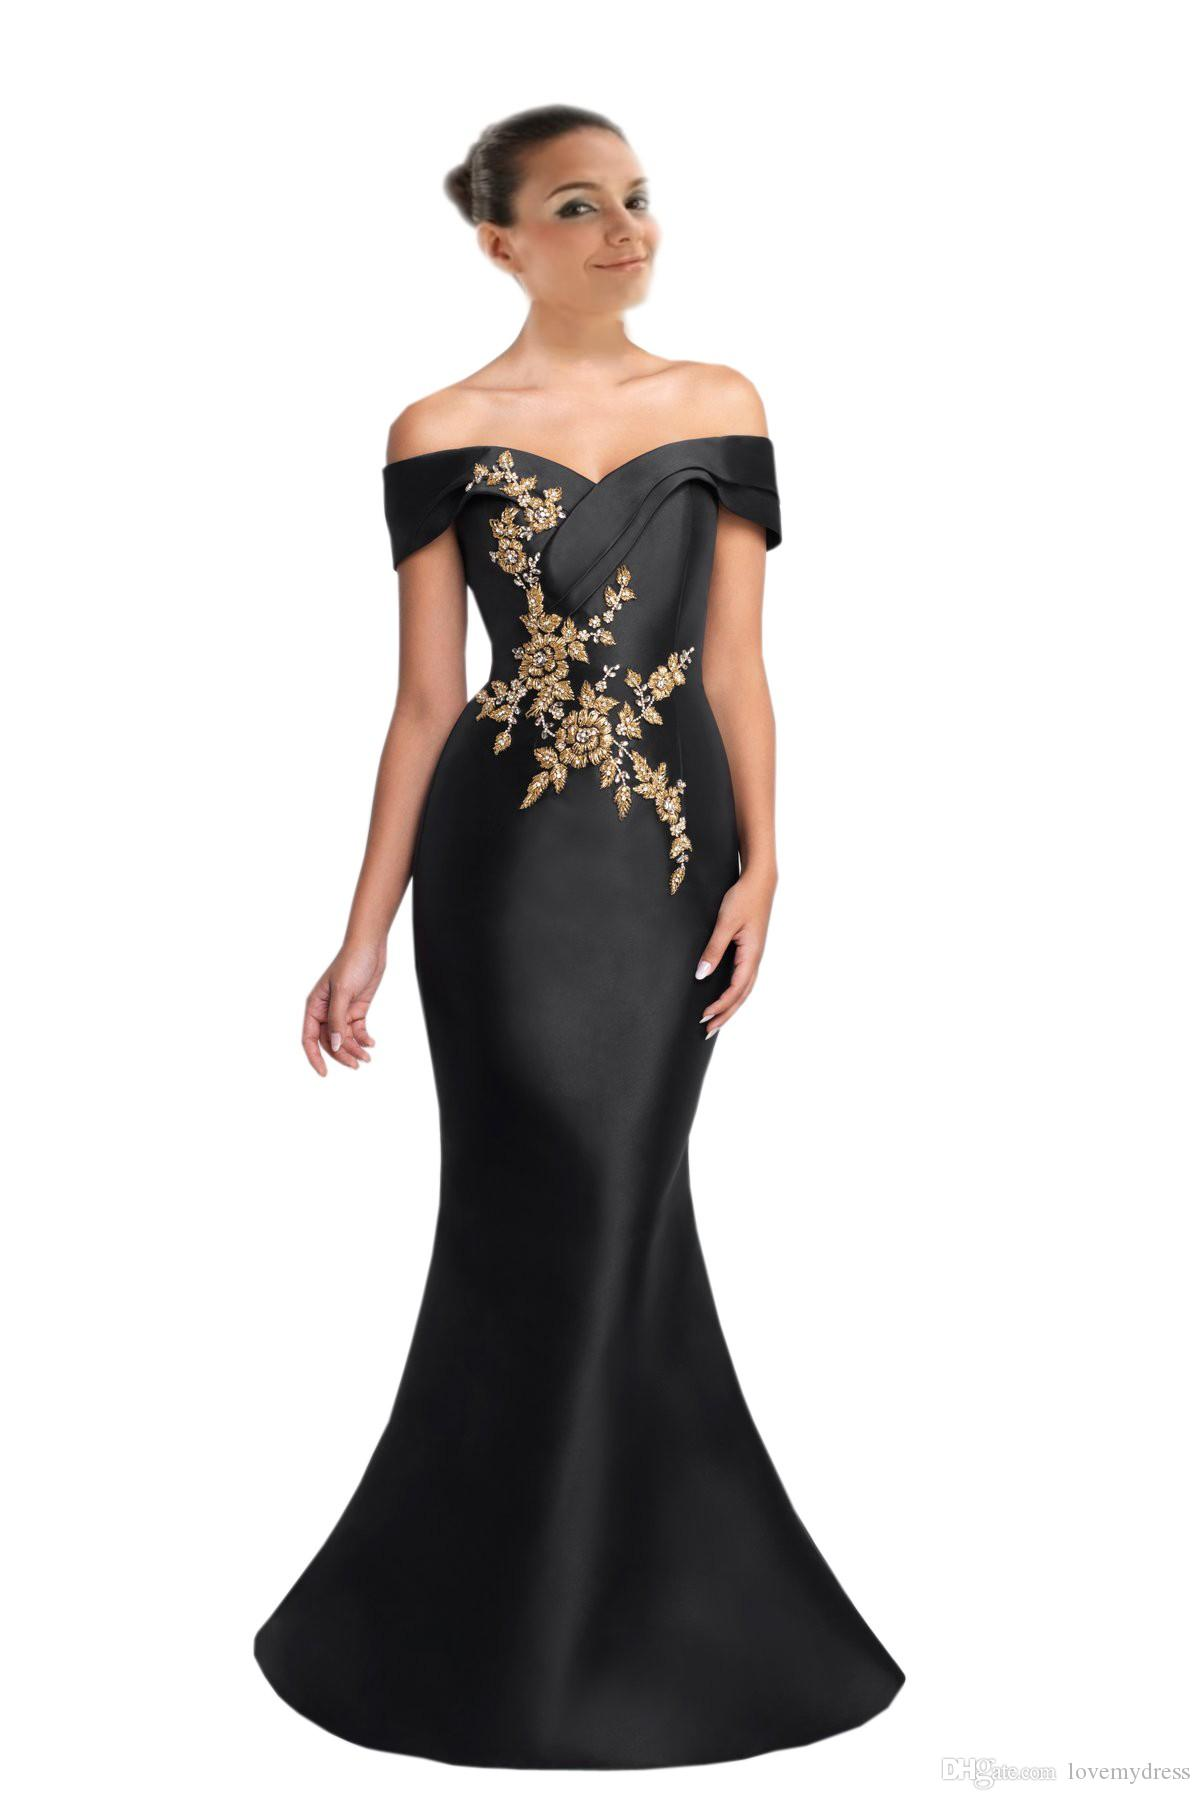 0c0108e8eb93 Gold Embellished Black Mermaid Prom Dresses 2019 V Neck Off The Shoulder  Satin Beads With Short Sleeves Pageant Evening Party Dress Dark Blue Prom  Dresses ...